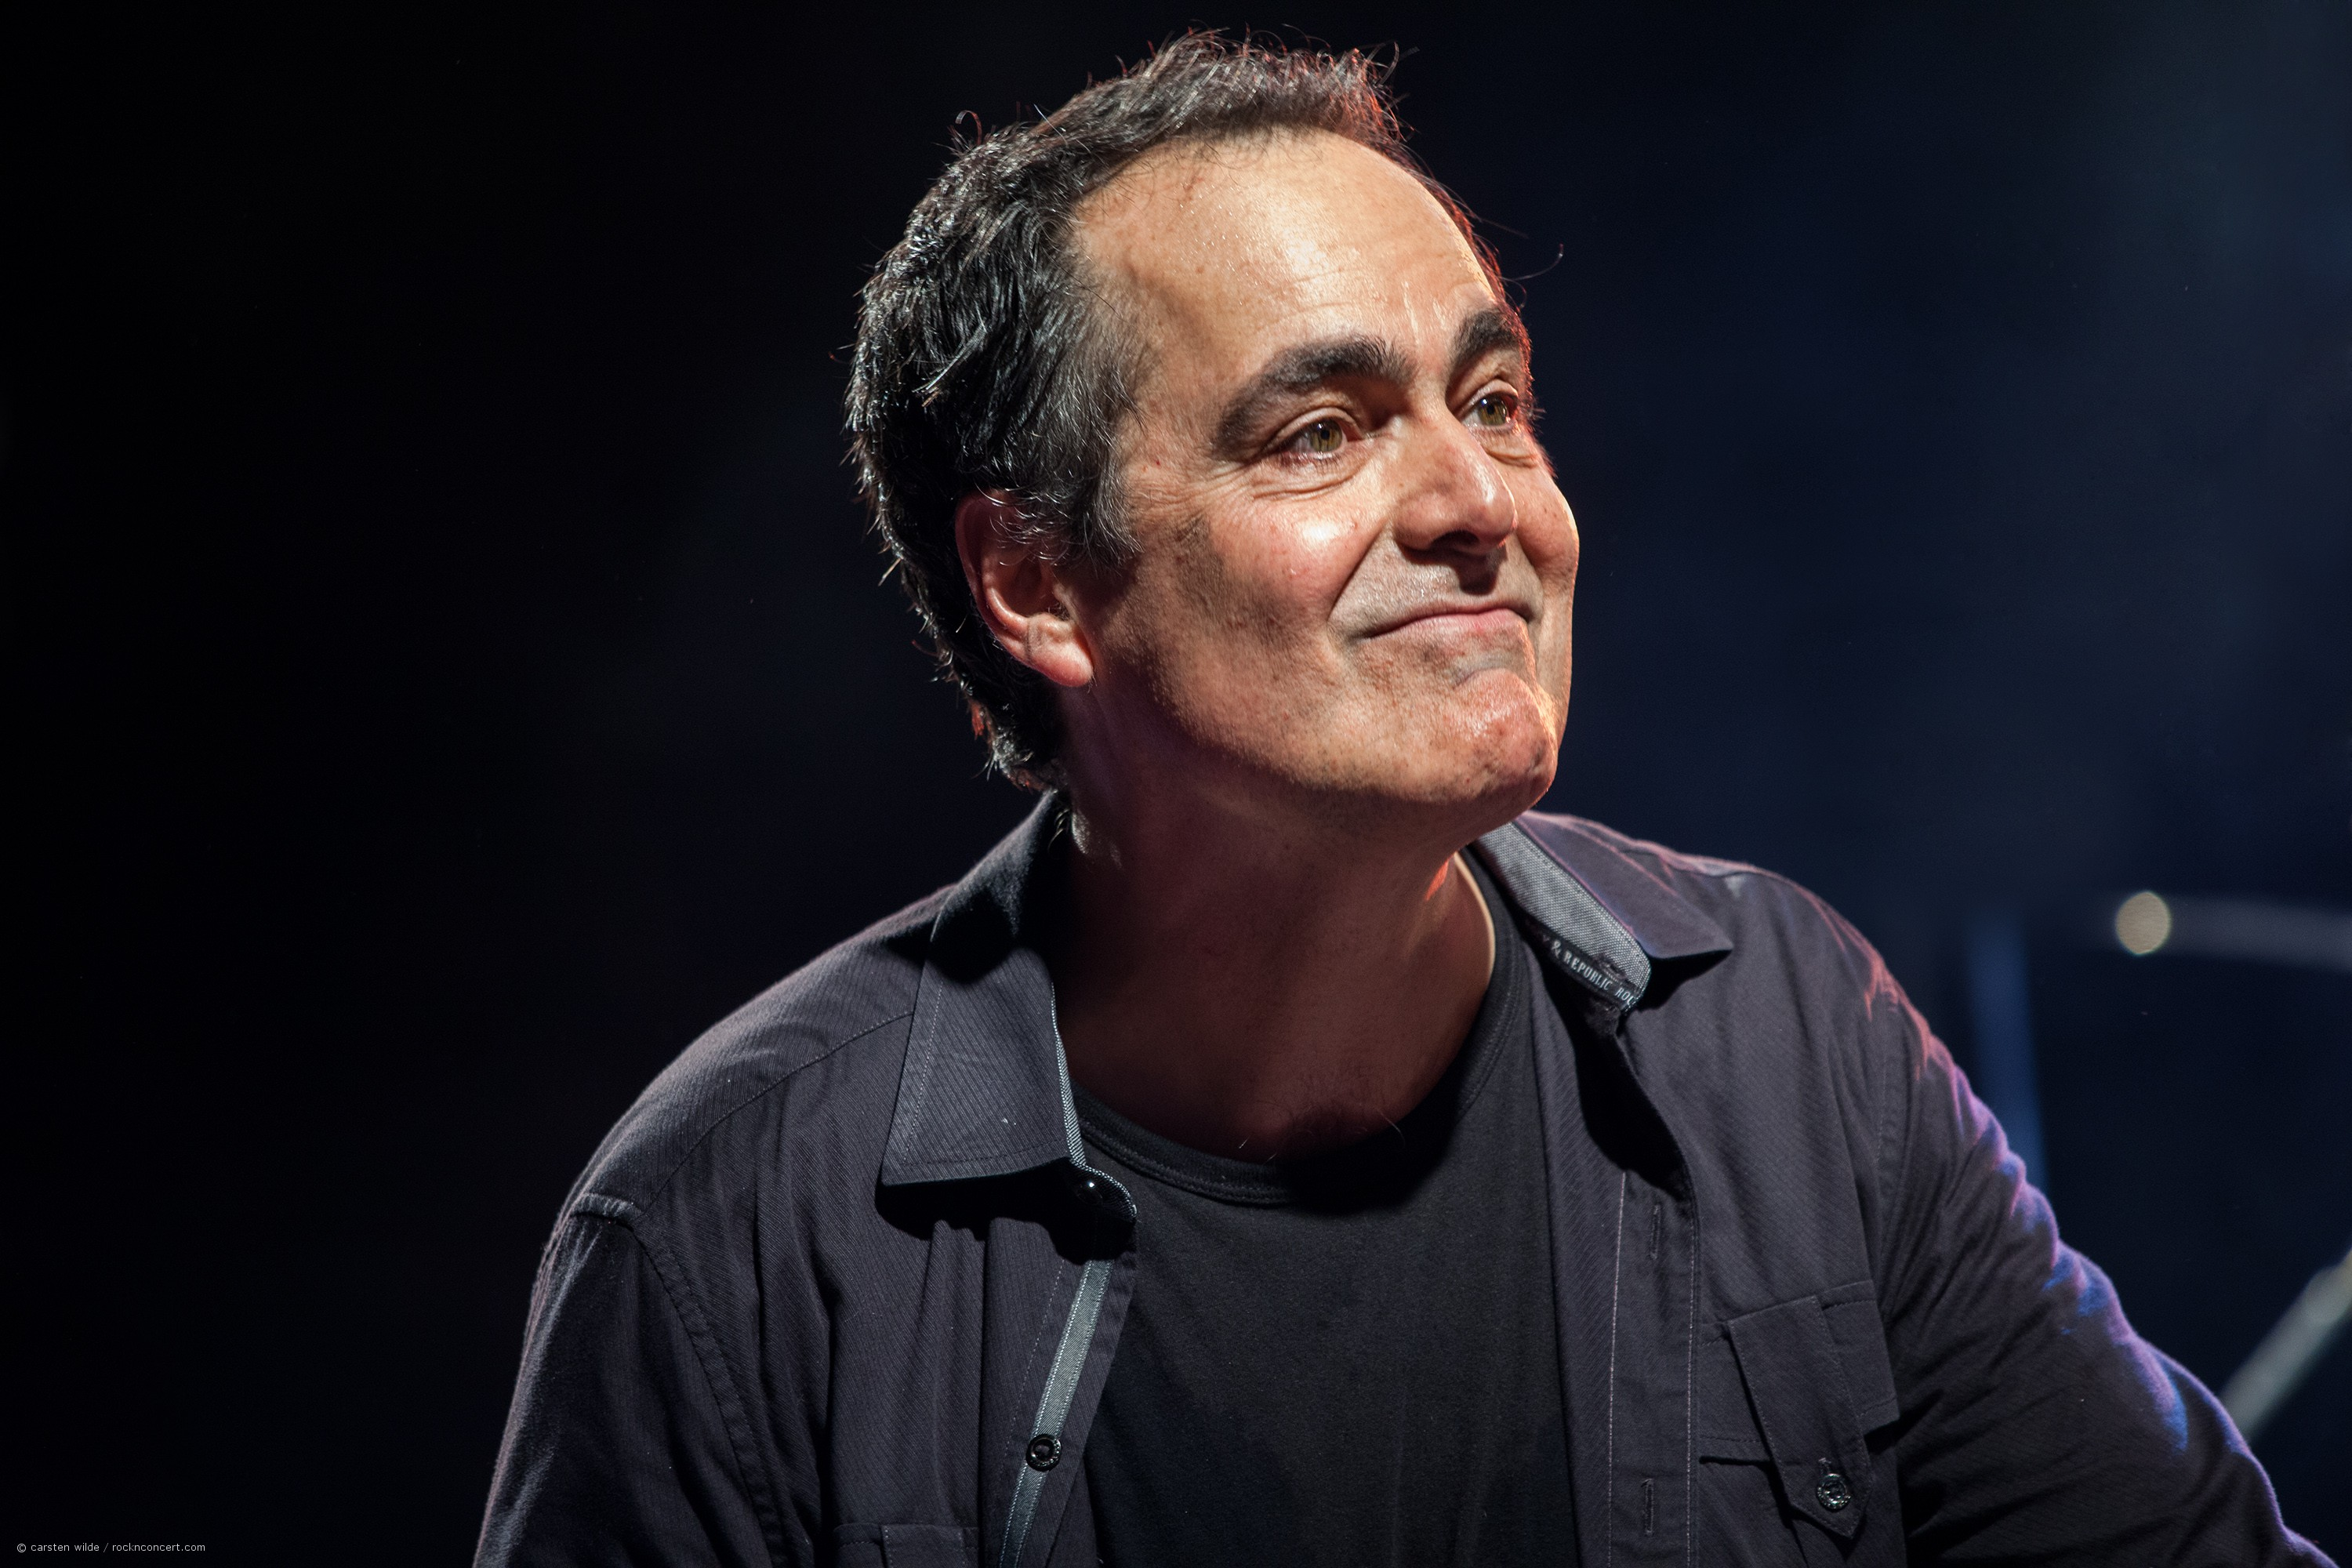 neal morse height